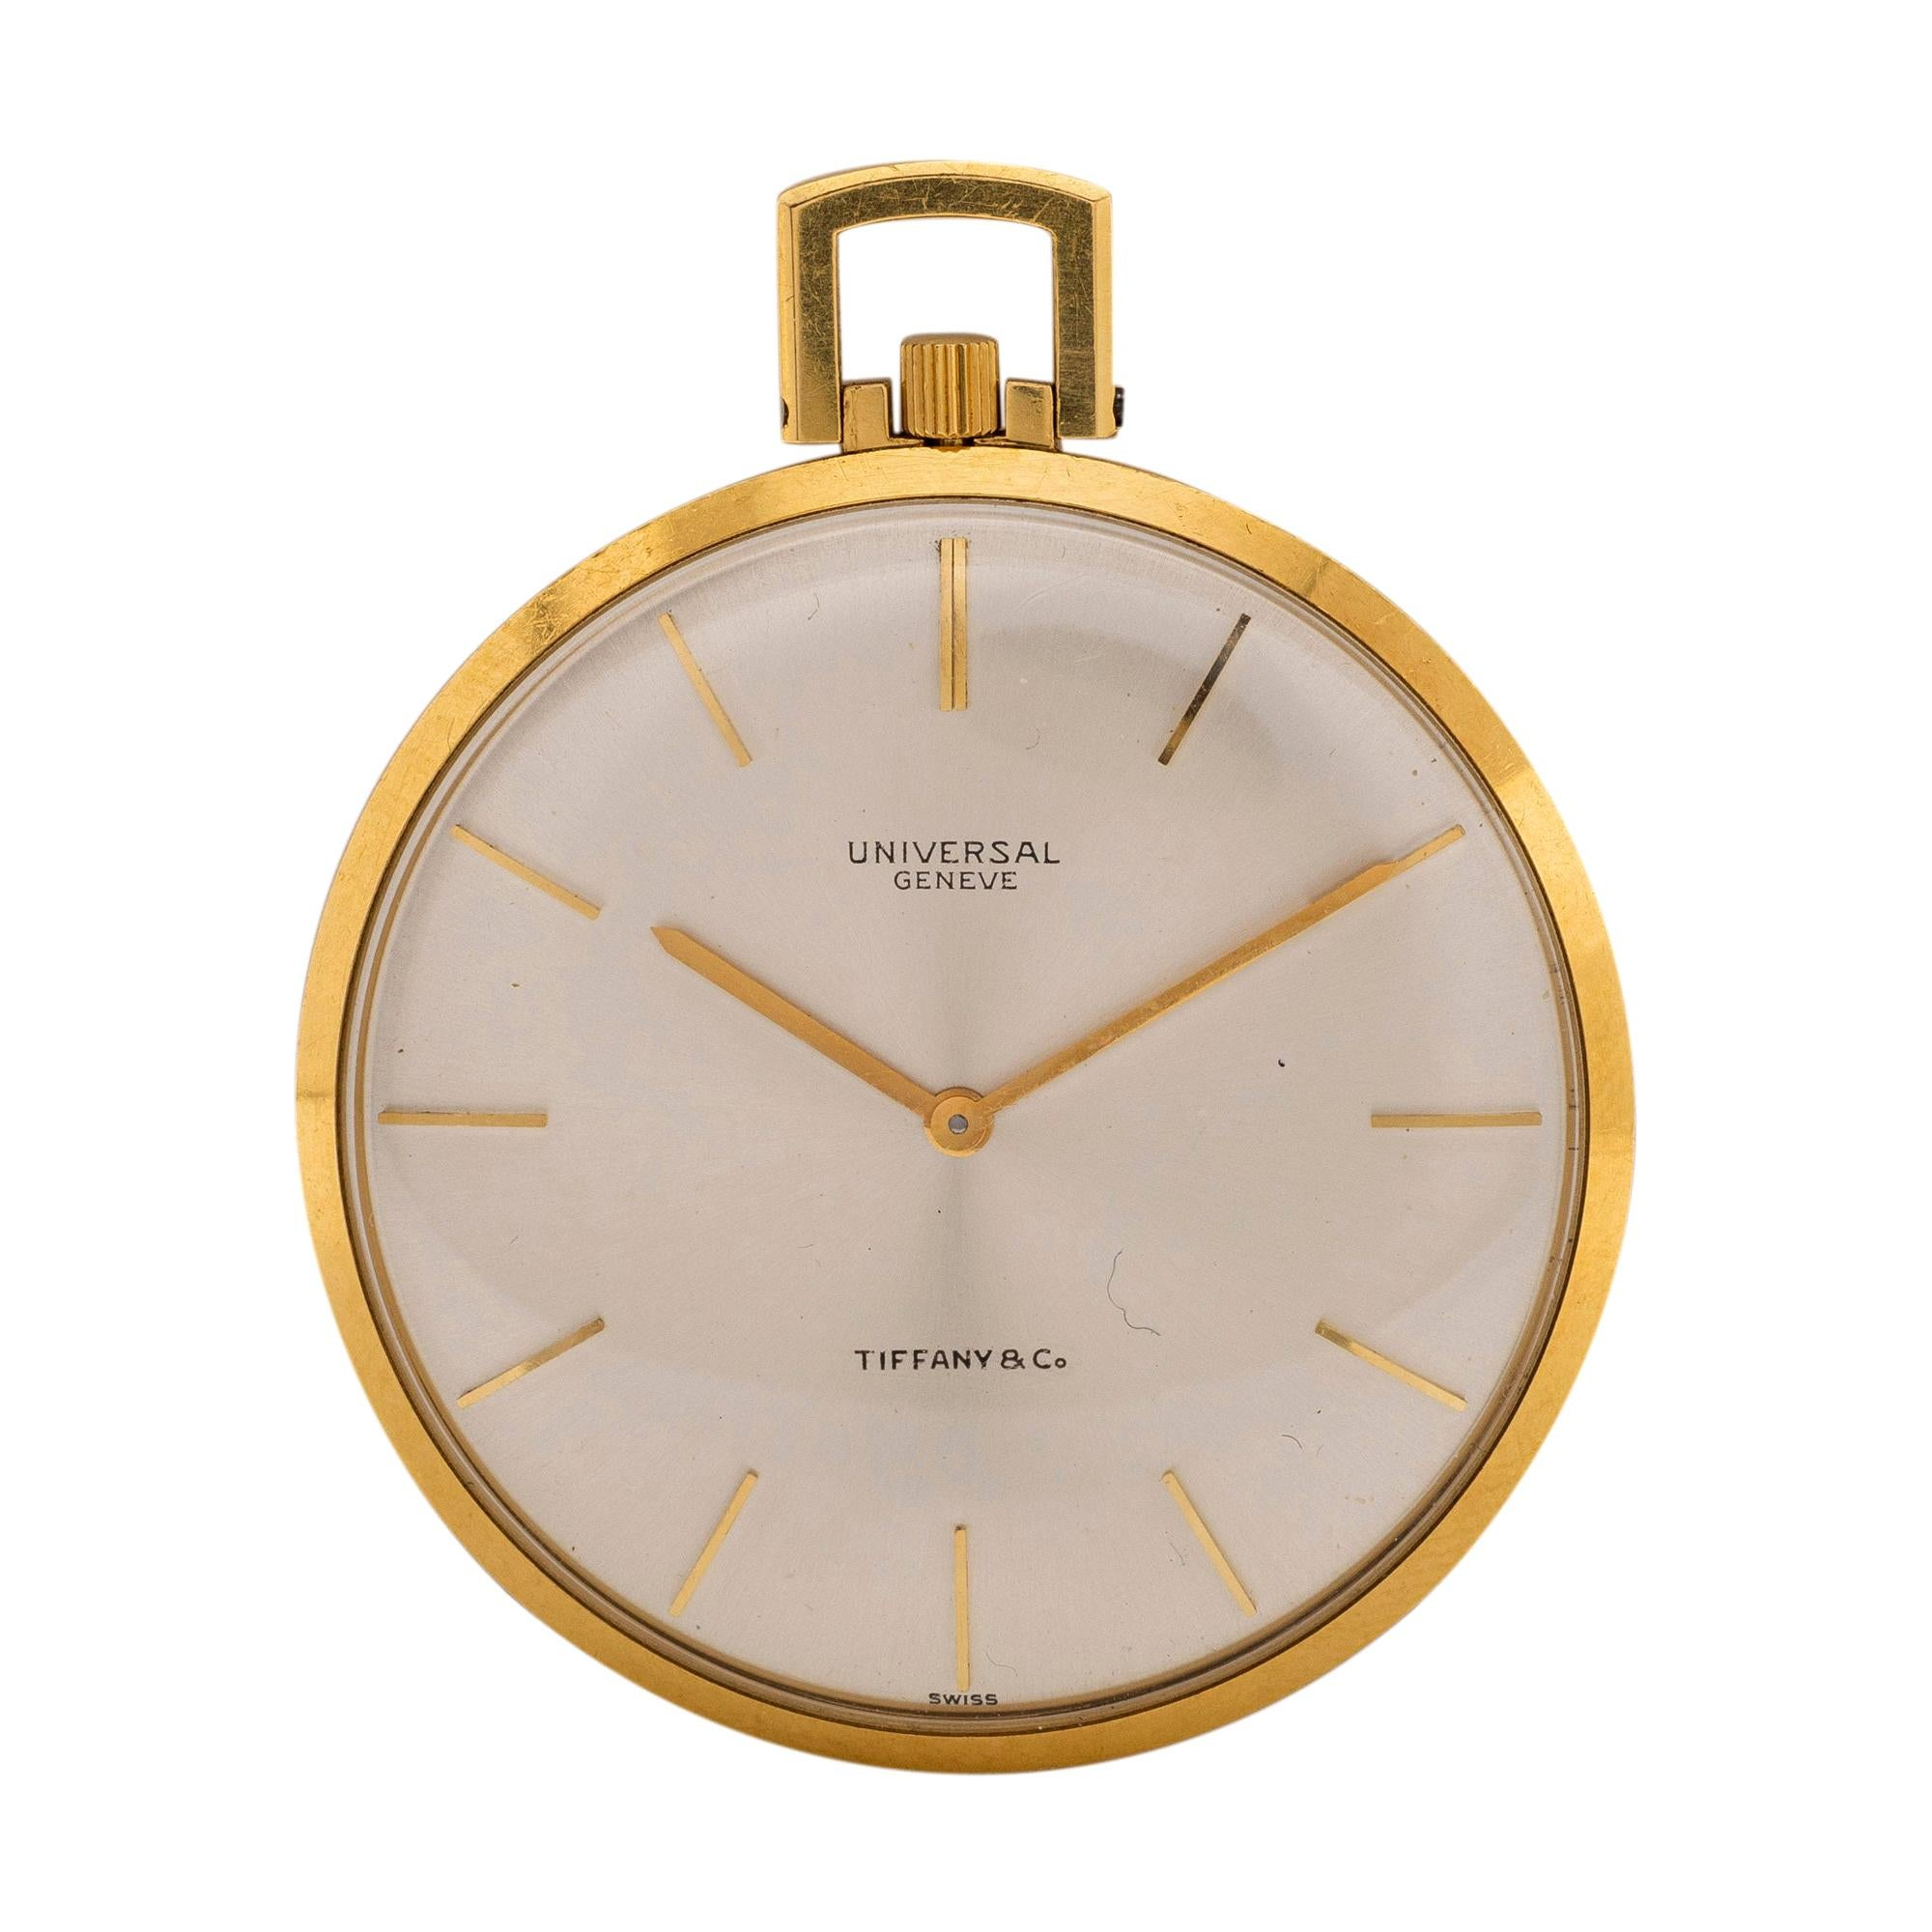 Universal Geneve Openface Watch, Retailed by Tiffany & Co.